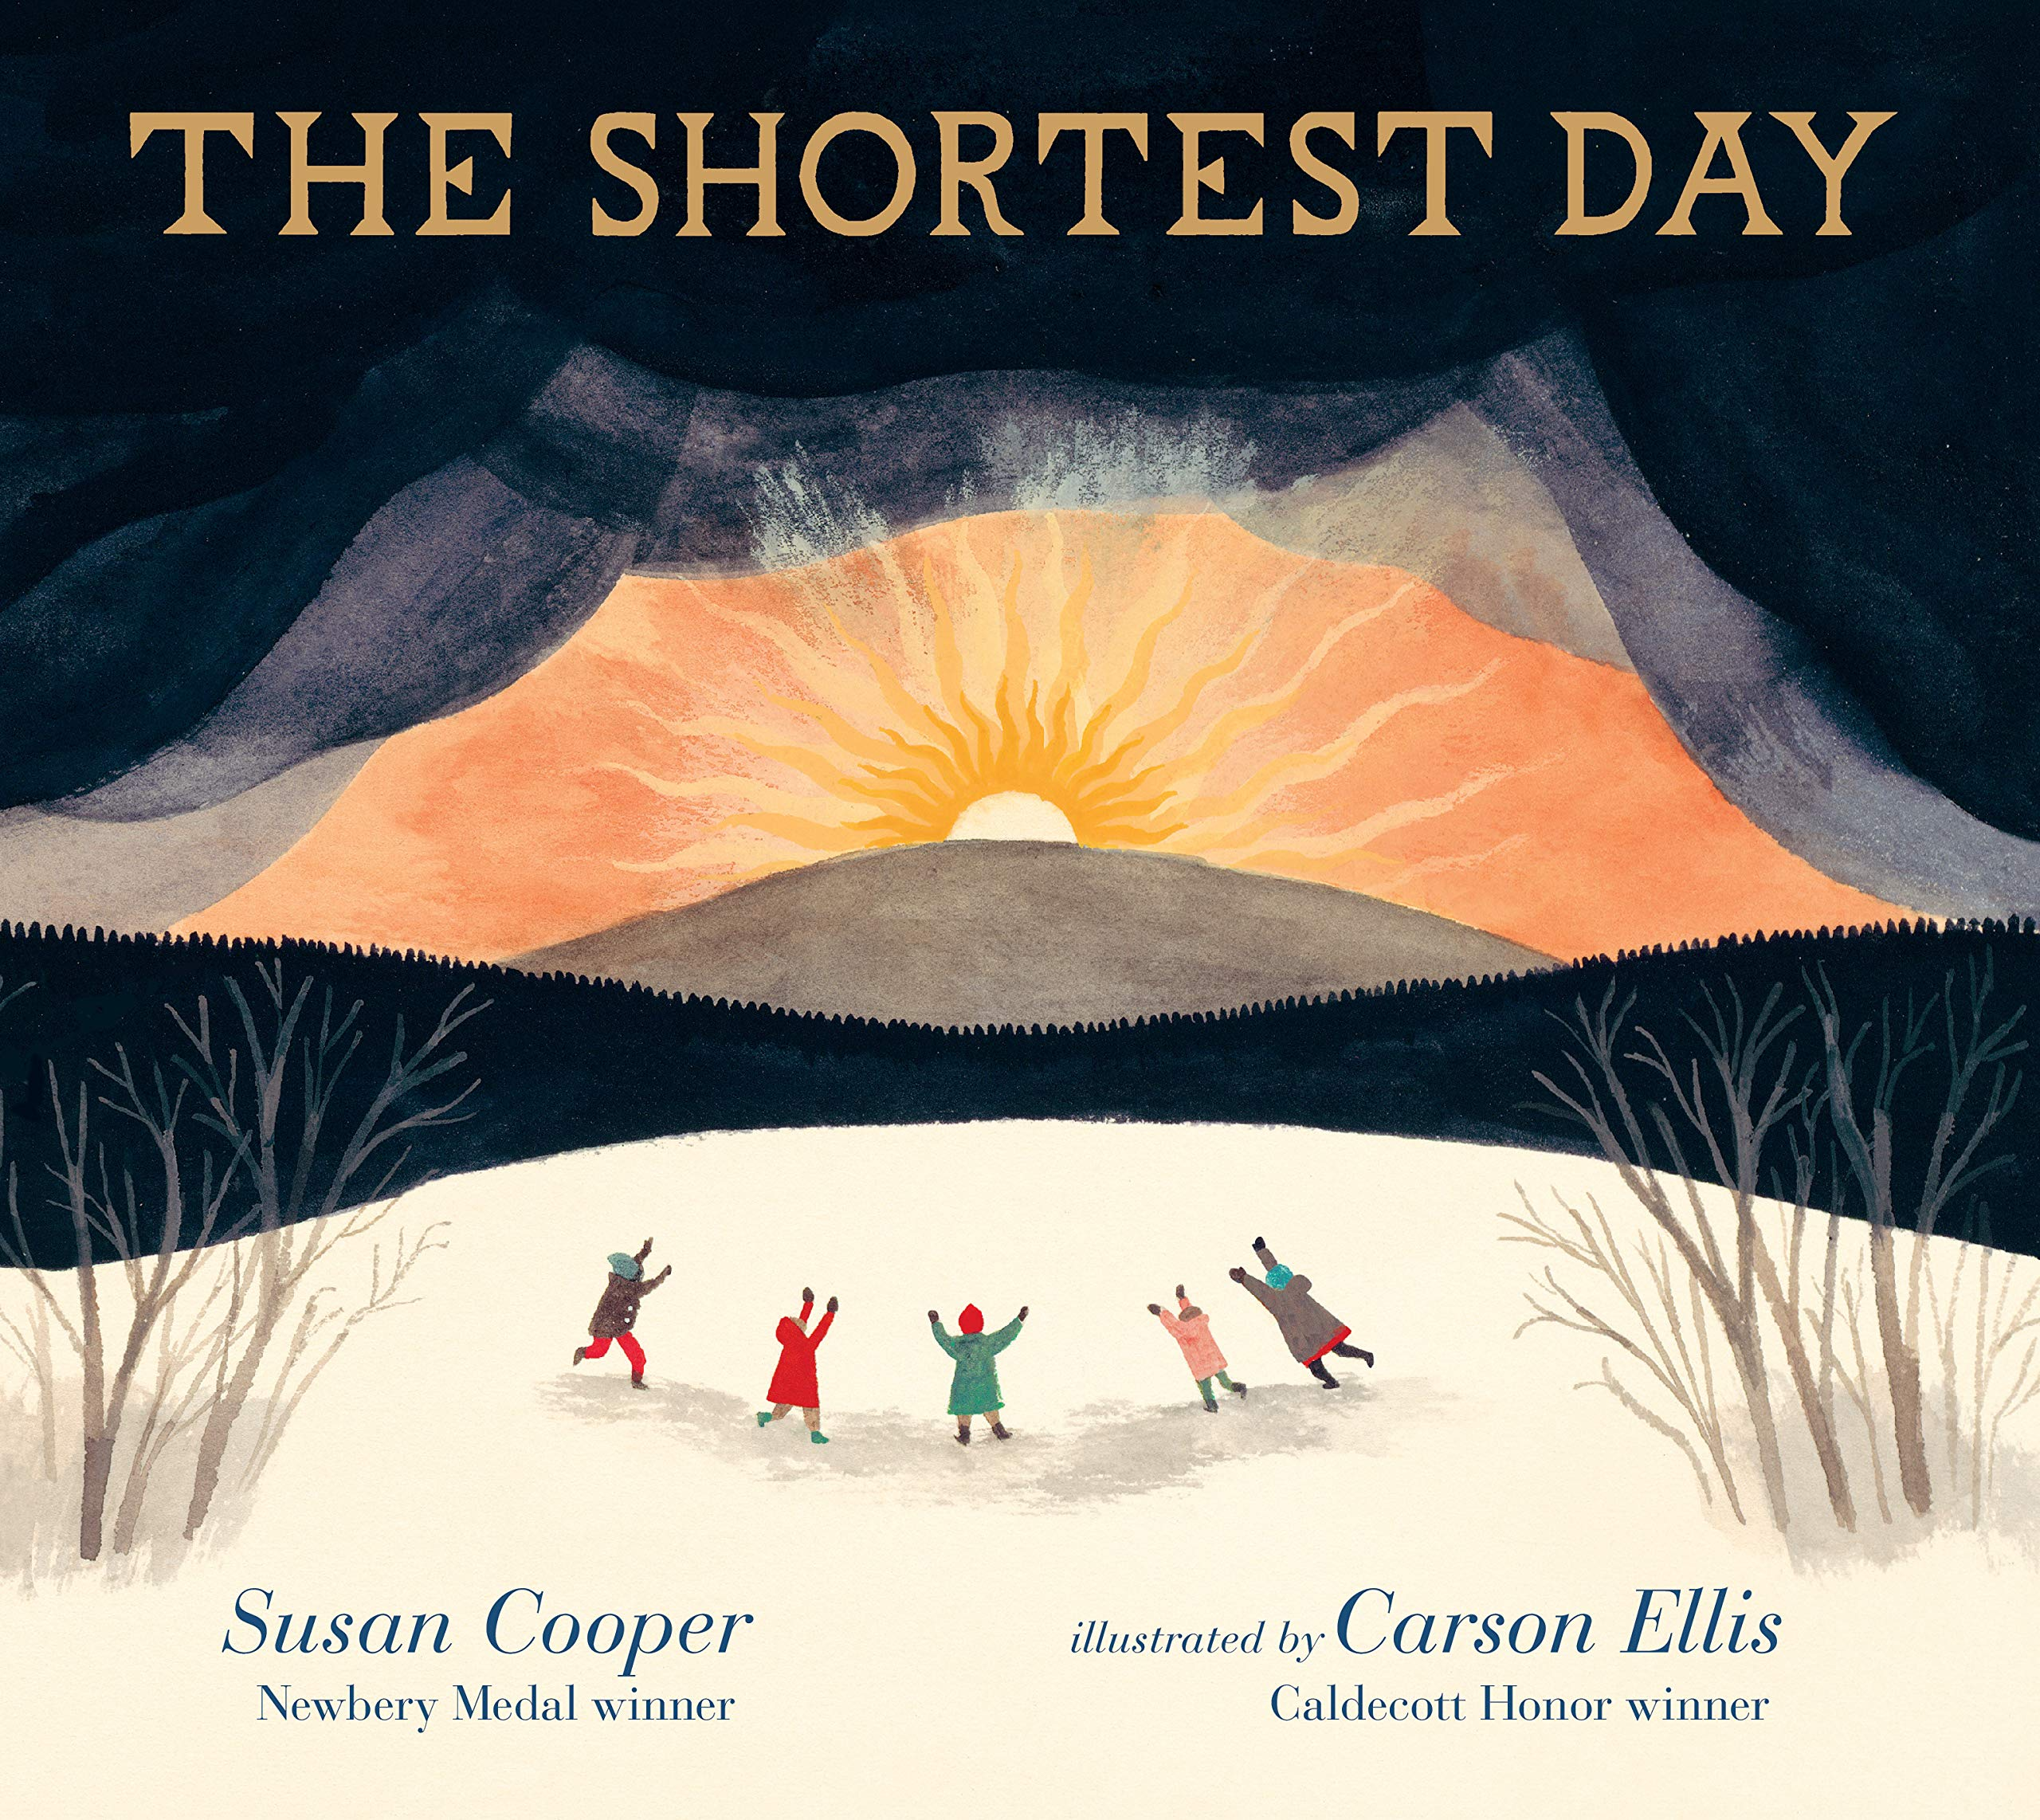 Image result for shortest day carson ellis""